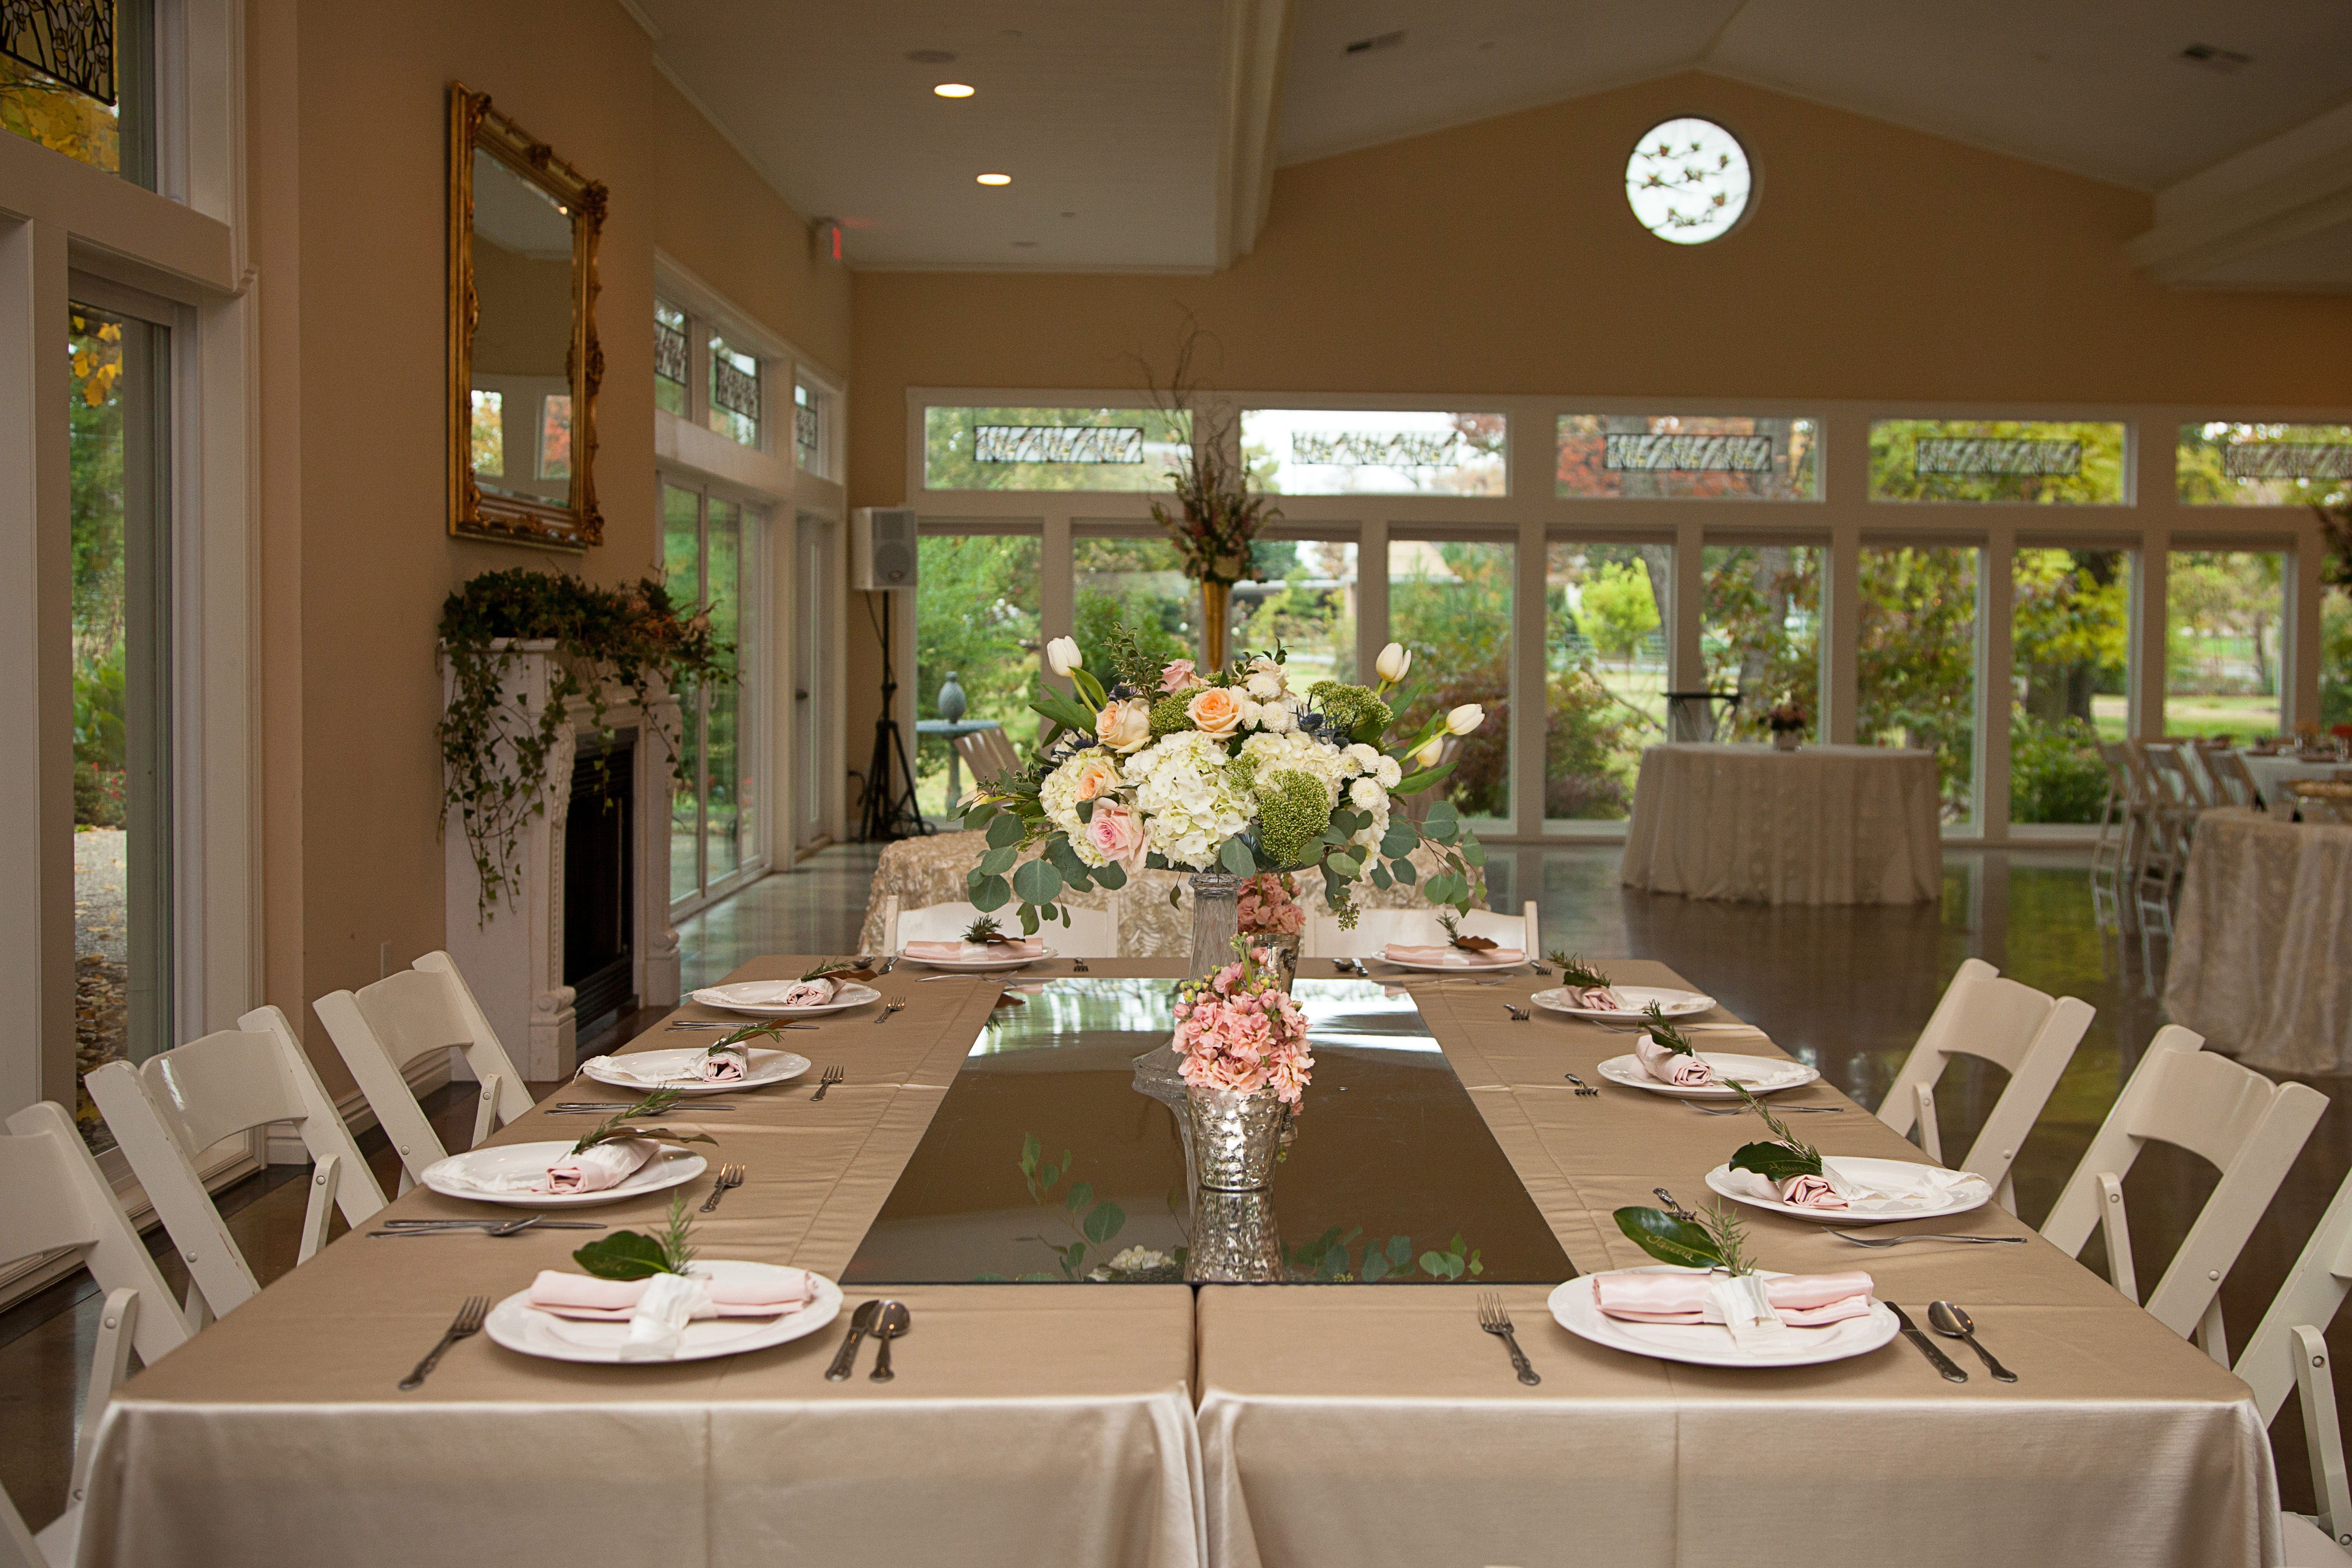 MG Open HouseBeautiful tablescapes by Claudia Slezak and